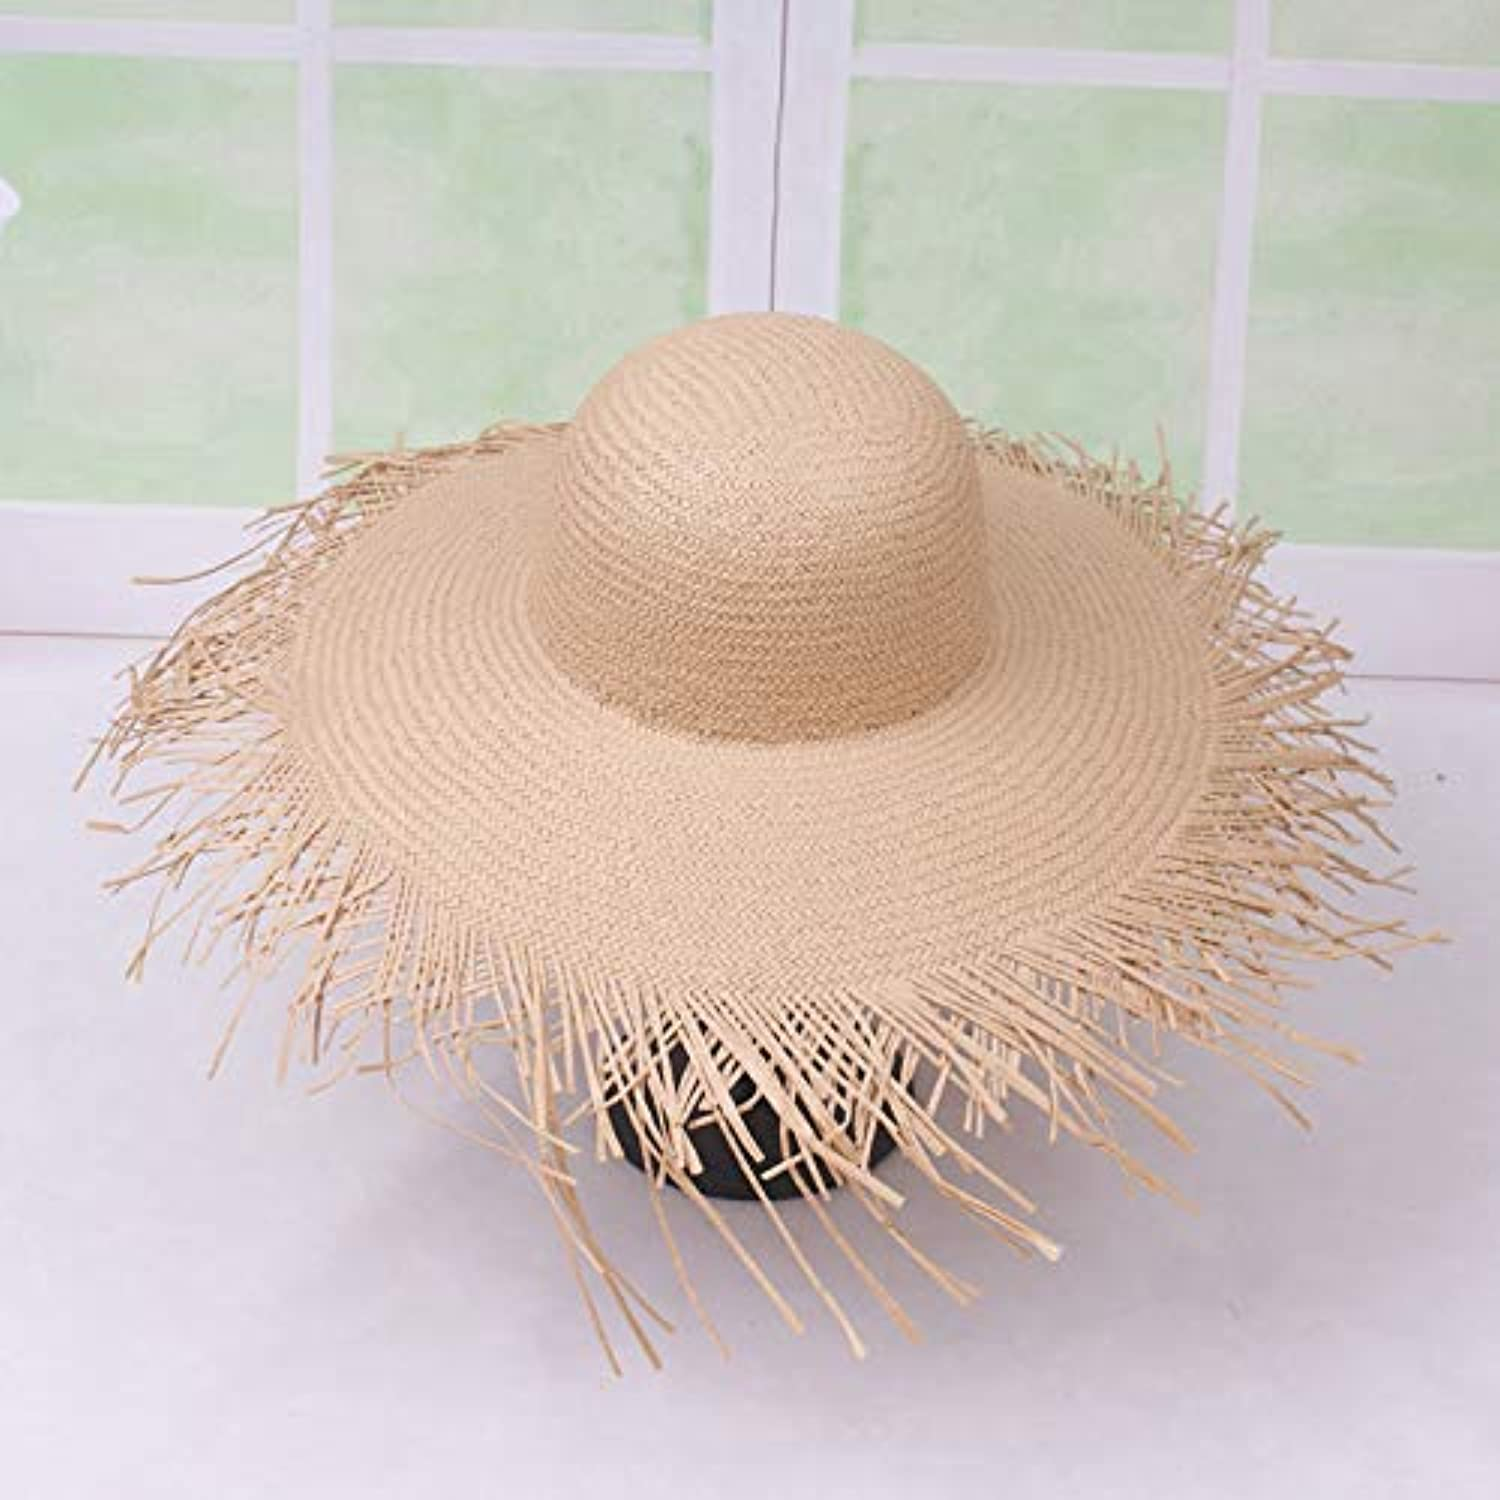 Straw Hat Female Spring and Summer Loose Fashion Straw Hat Female Beach Holiday Big Hat Straw Hat Travel Lady Hat UPF 50